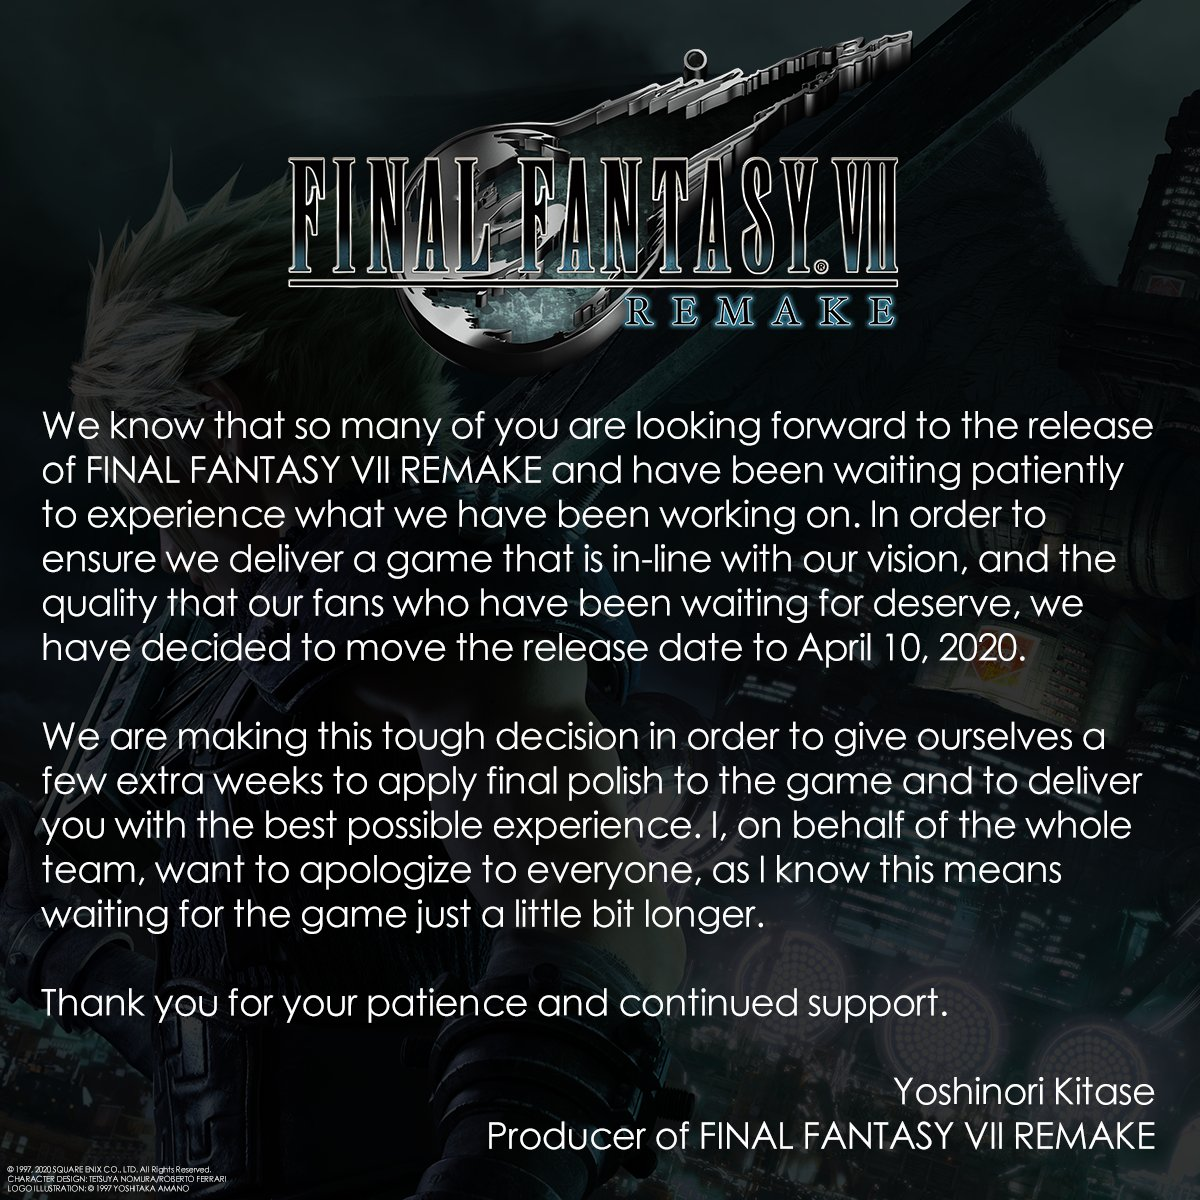 The Remake's Delay Announcement